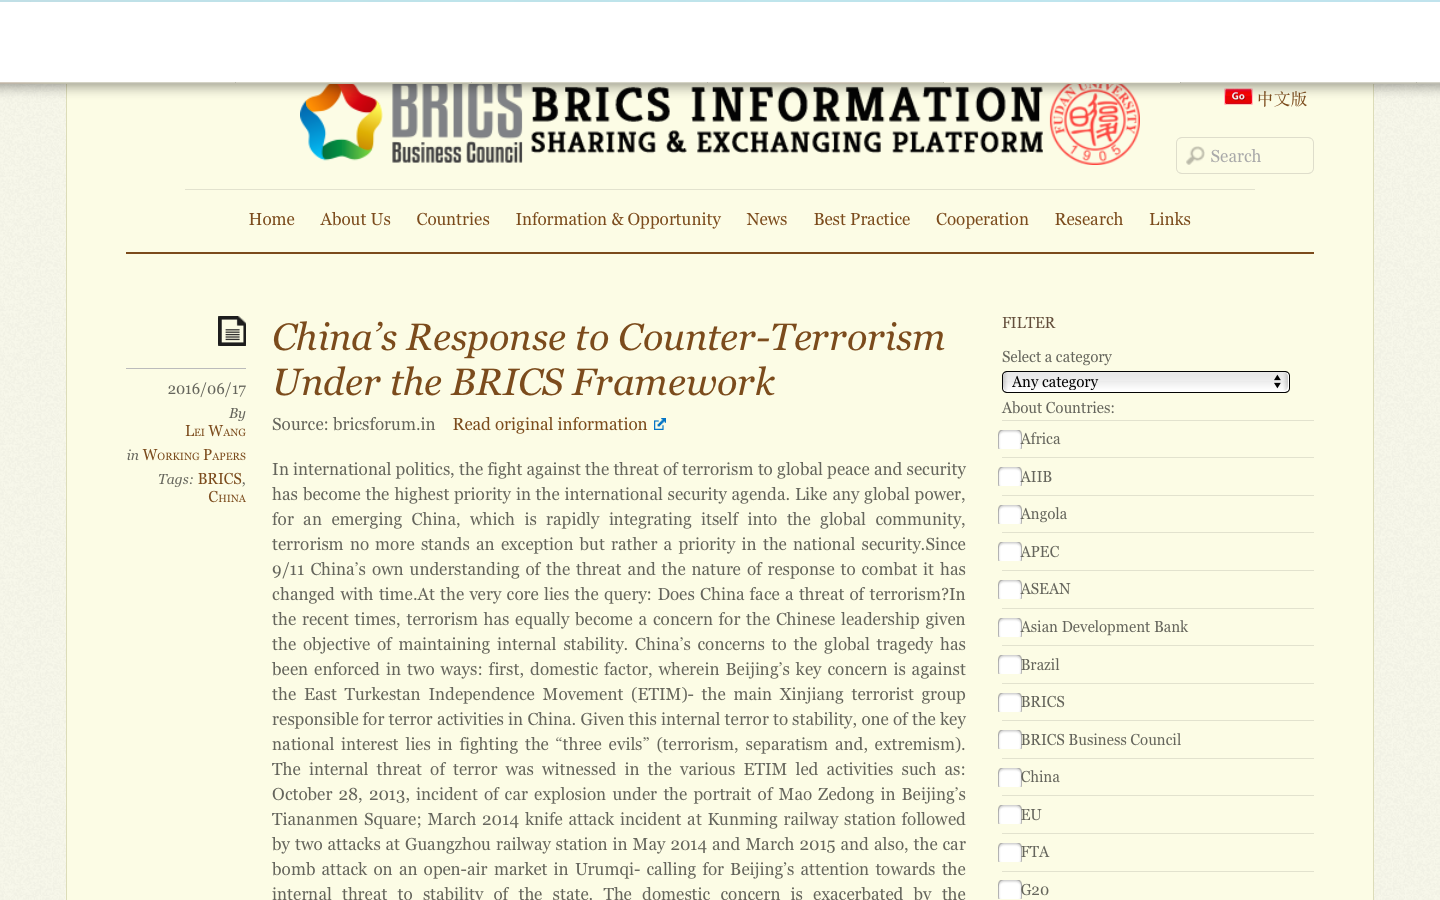 My takeaway @http://www.brics-info.org/chinas-response-to-counter-terrorism-under-the-brics-framework/?s=Amrita+Jash https://t.co/kbFwmSP3yG